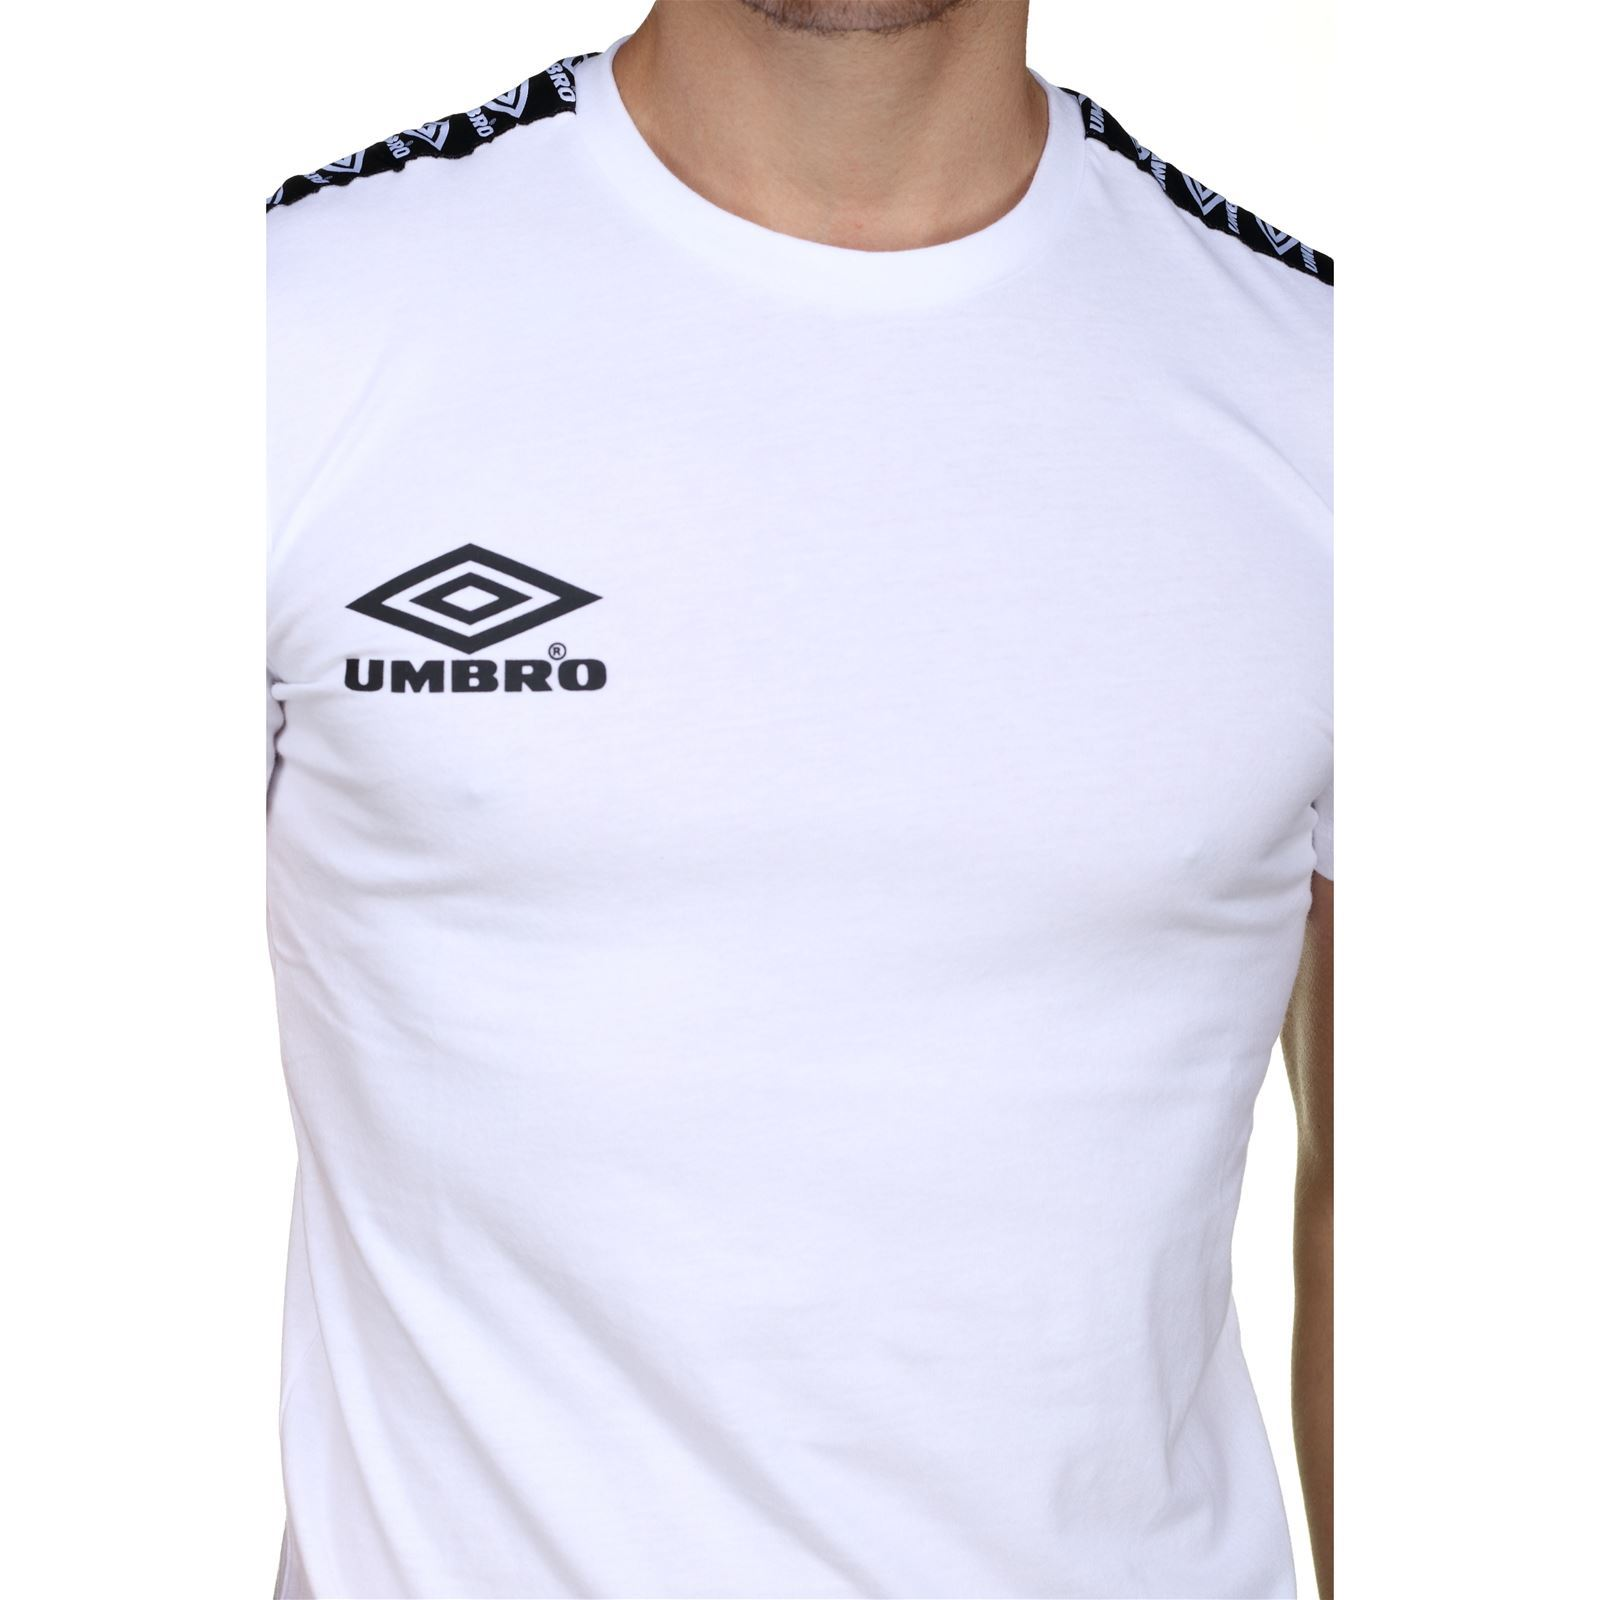 Homme TapT Tee shirt Manches Blanc V Street Umbro Courtes IE29YWDH